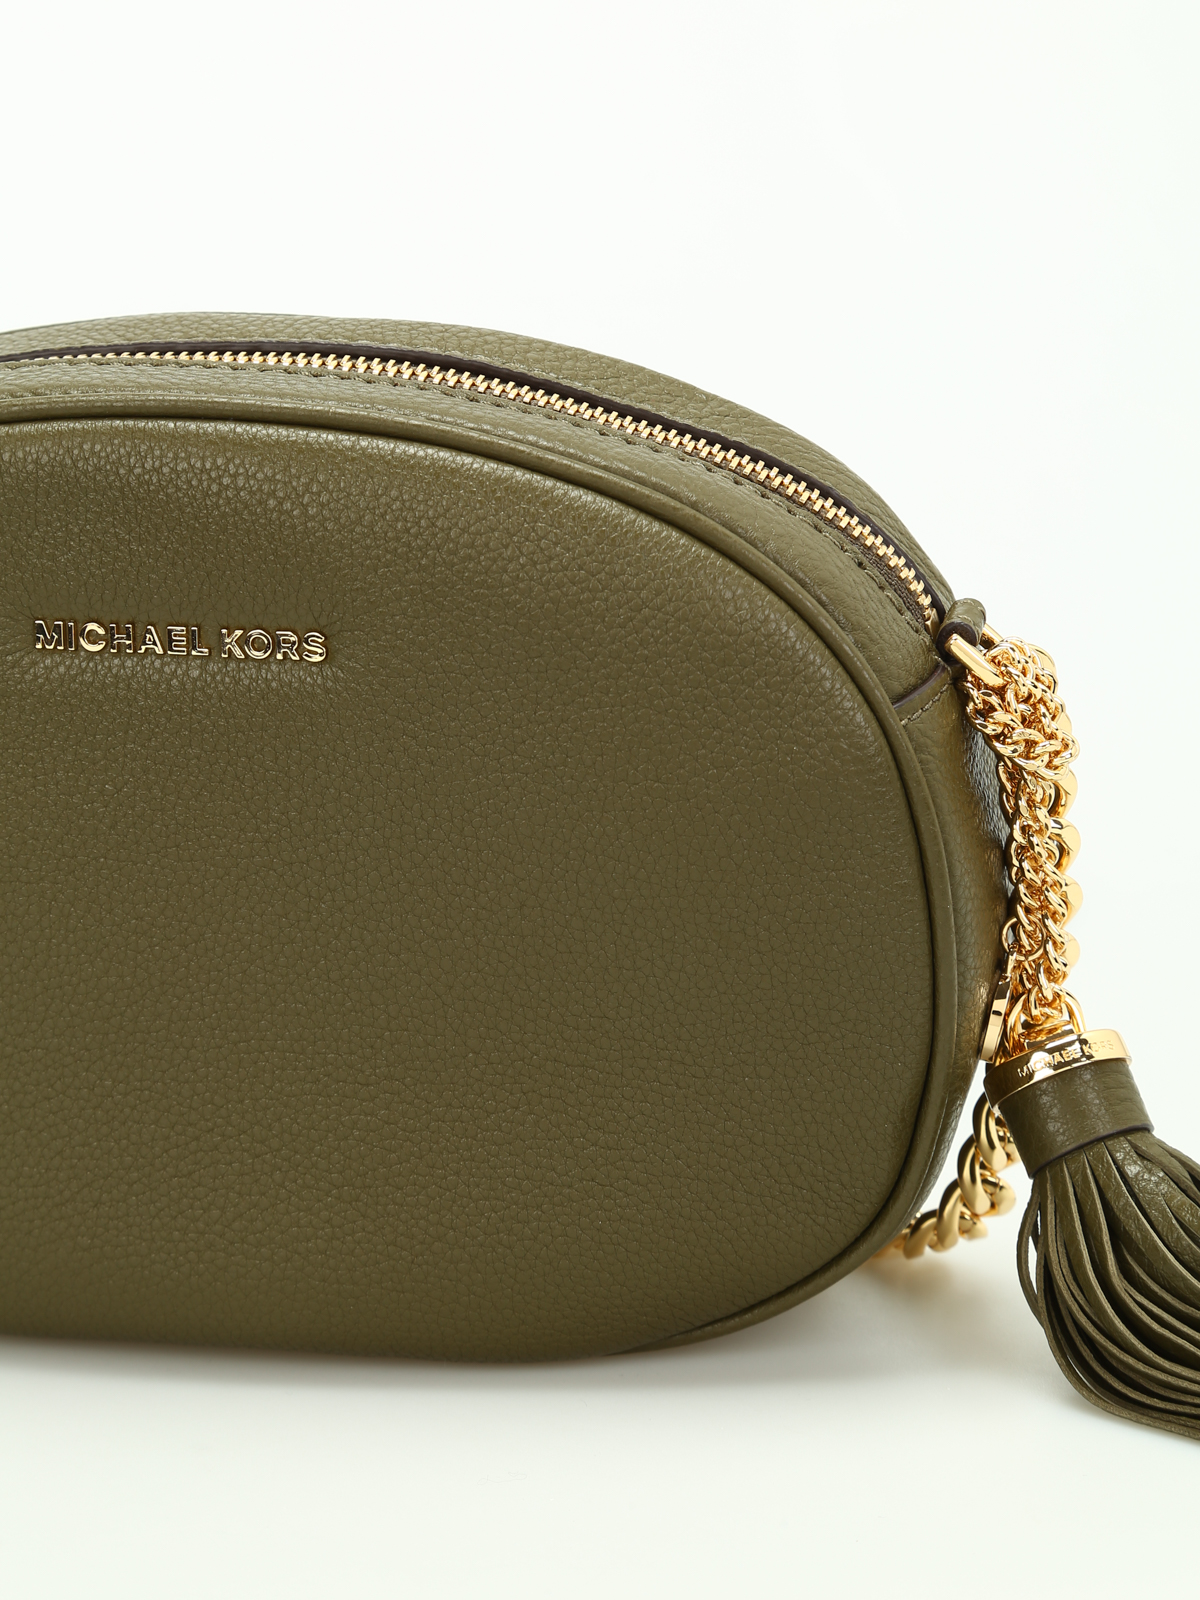 d56c8a0d4480eb MICHAEL KORS: cross body bags online - Ginny leather medium crossbody